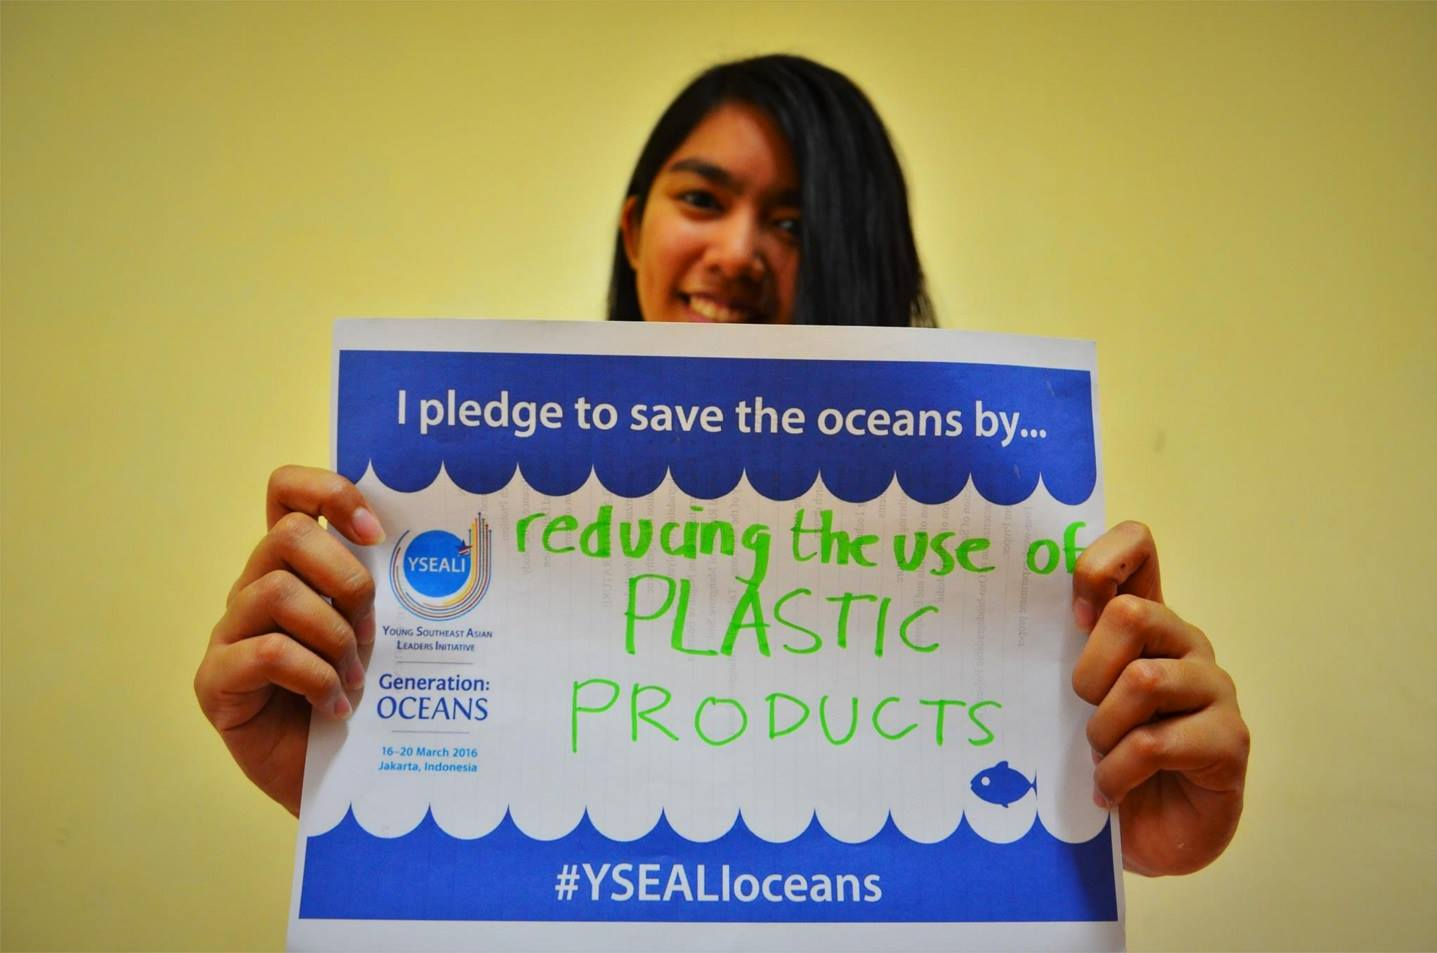 64 Southeast Asian leaders come together in Jakarta to save our oceans.